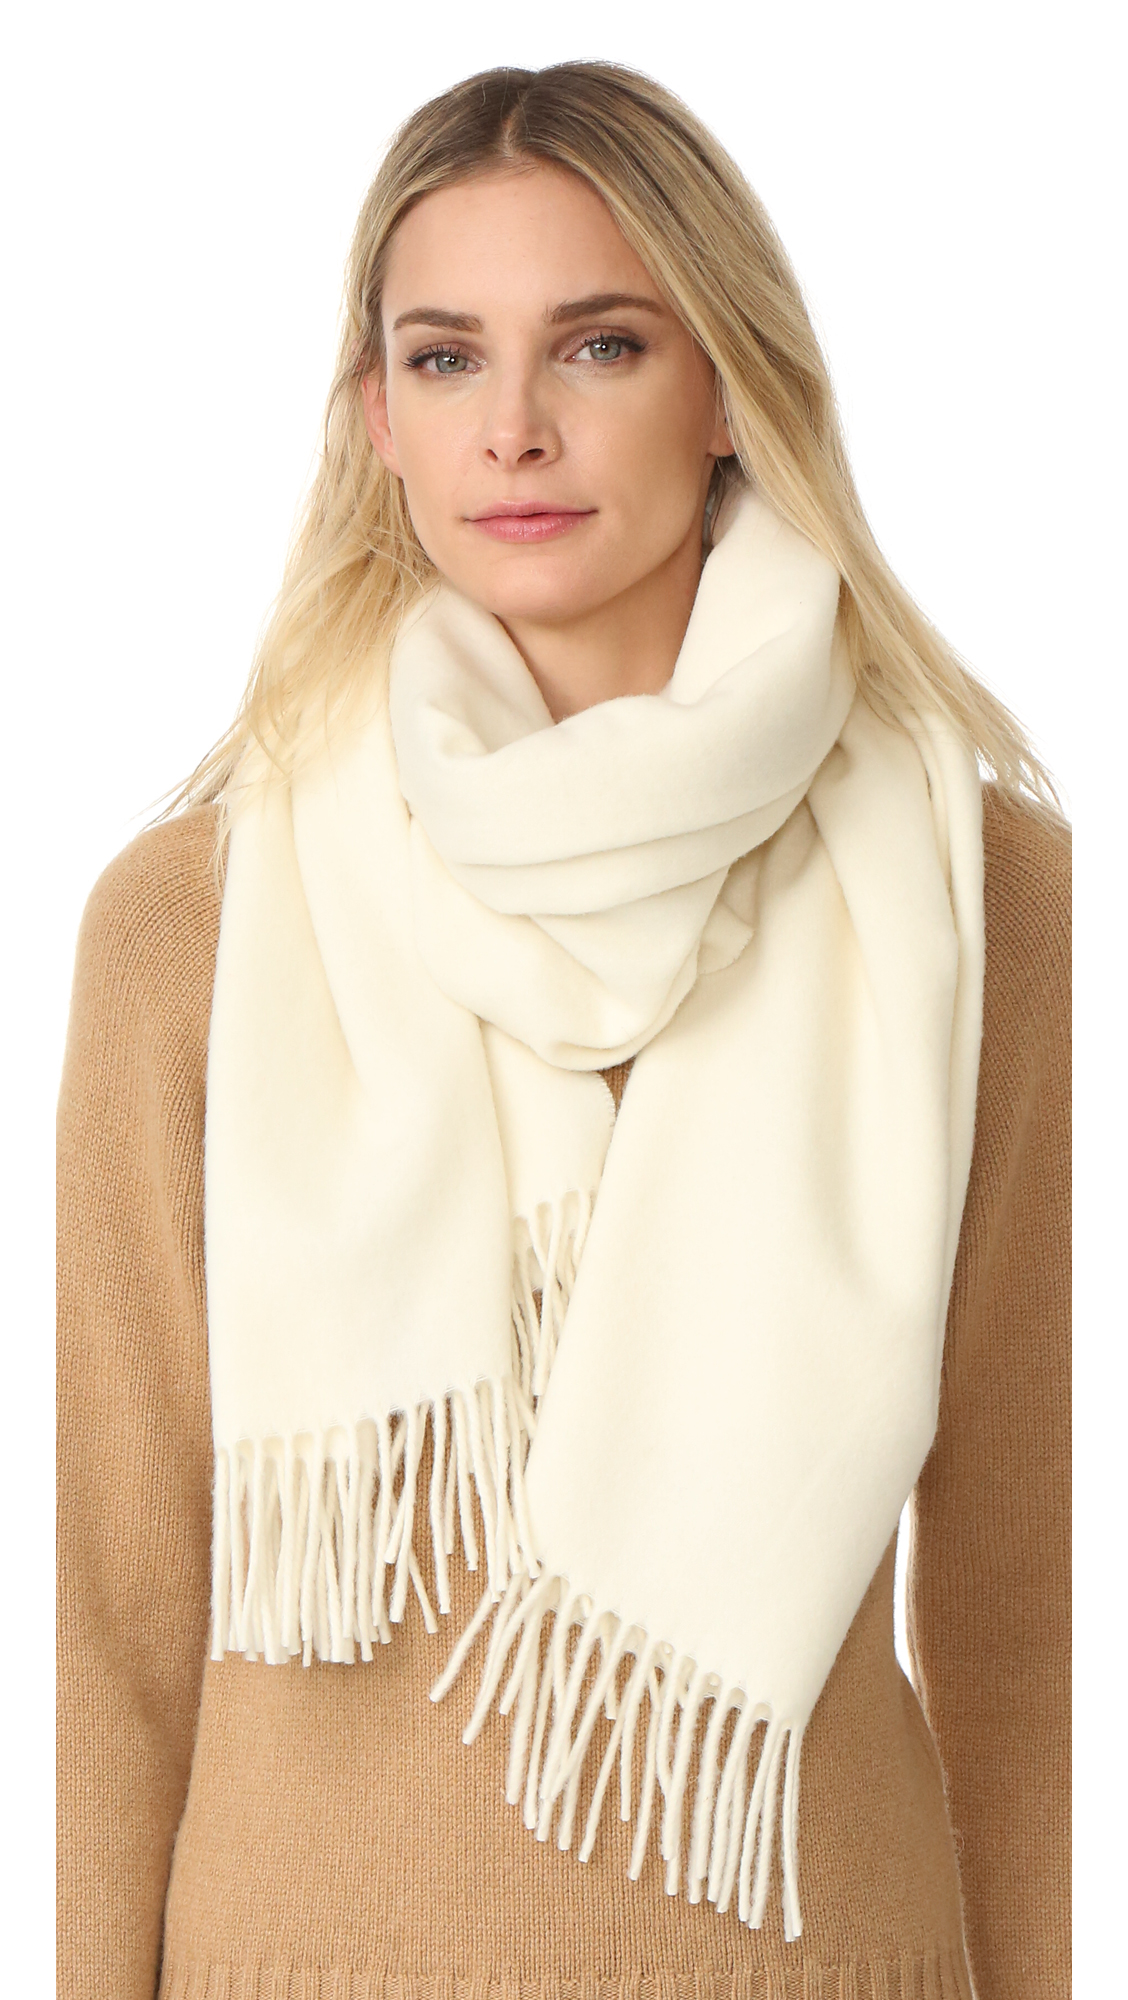 Acne Studios Canada Scarf - Ivory White at Shopbop